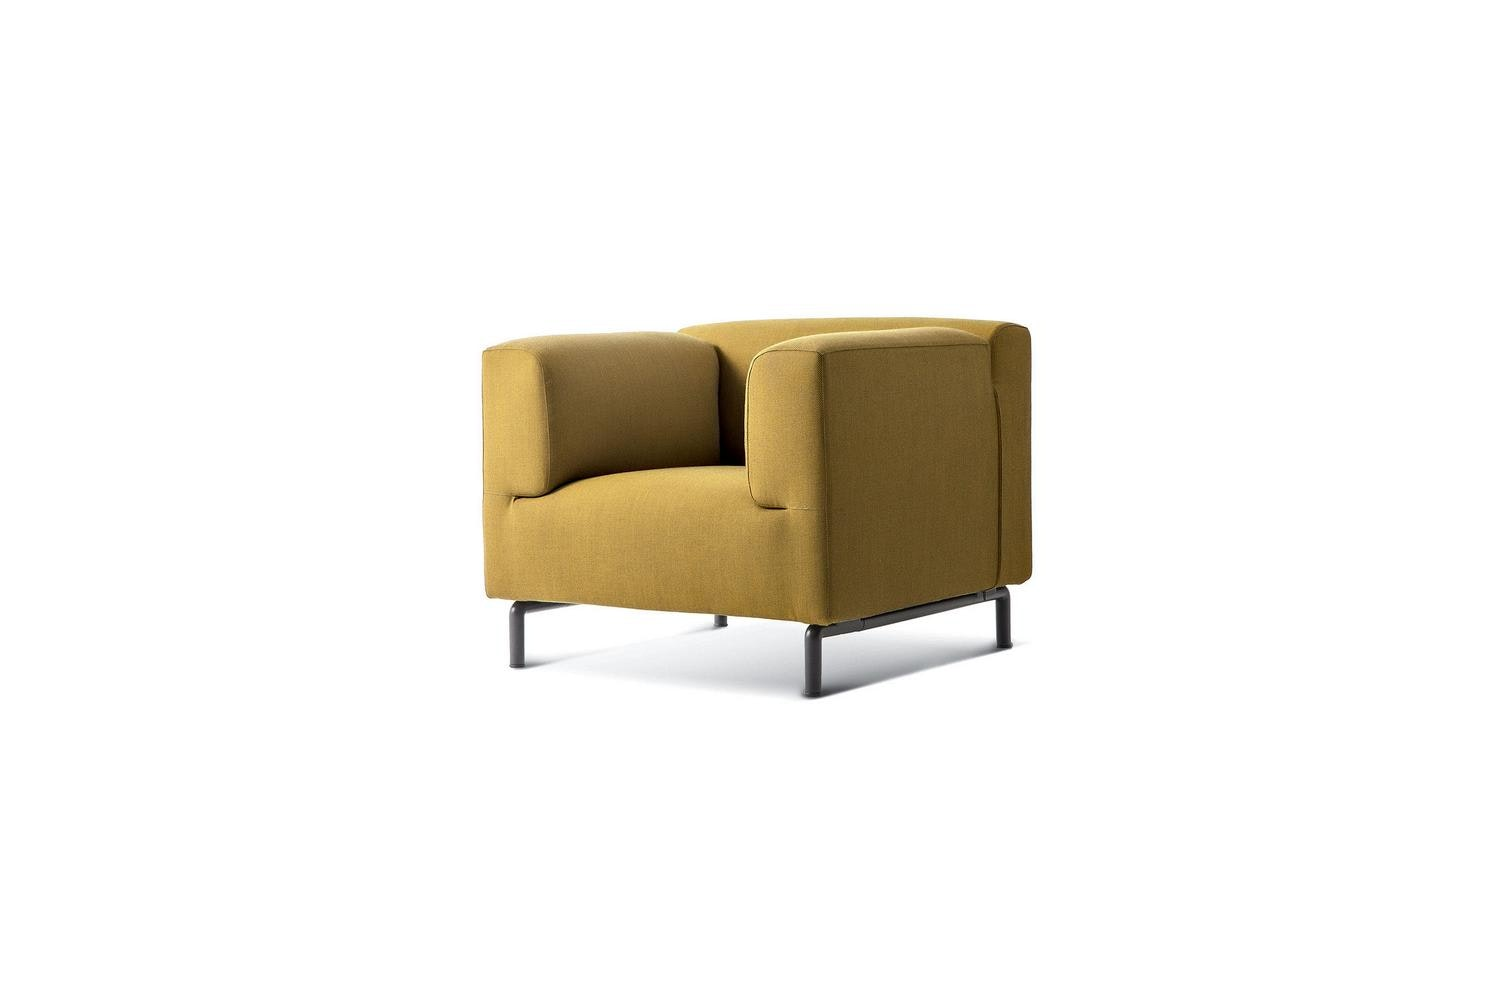 250 Met Armchair by Piero Lissoni for Cassina